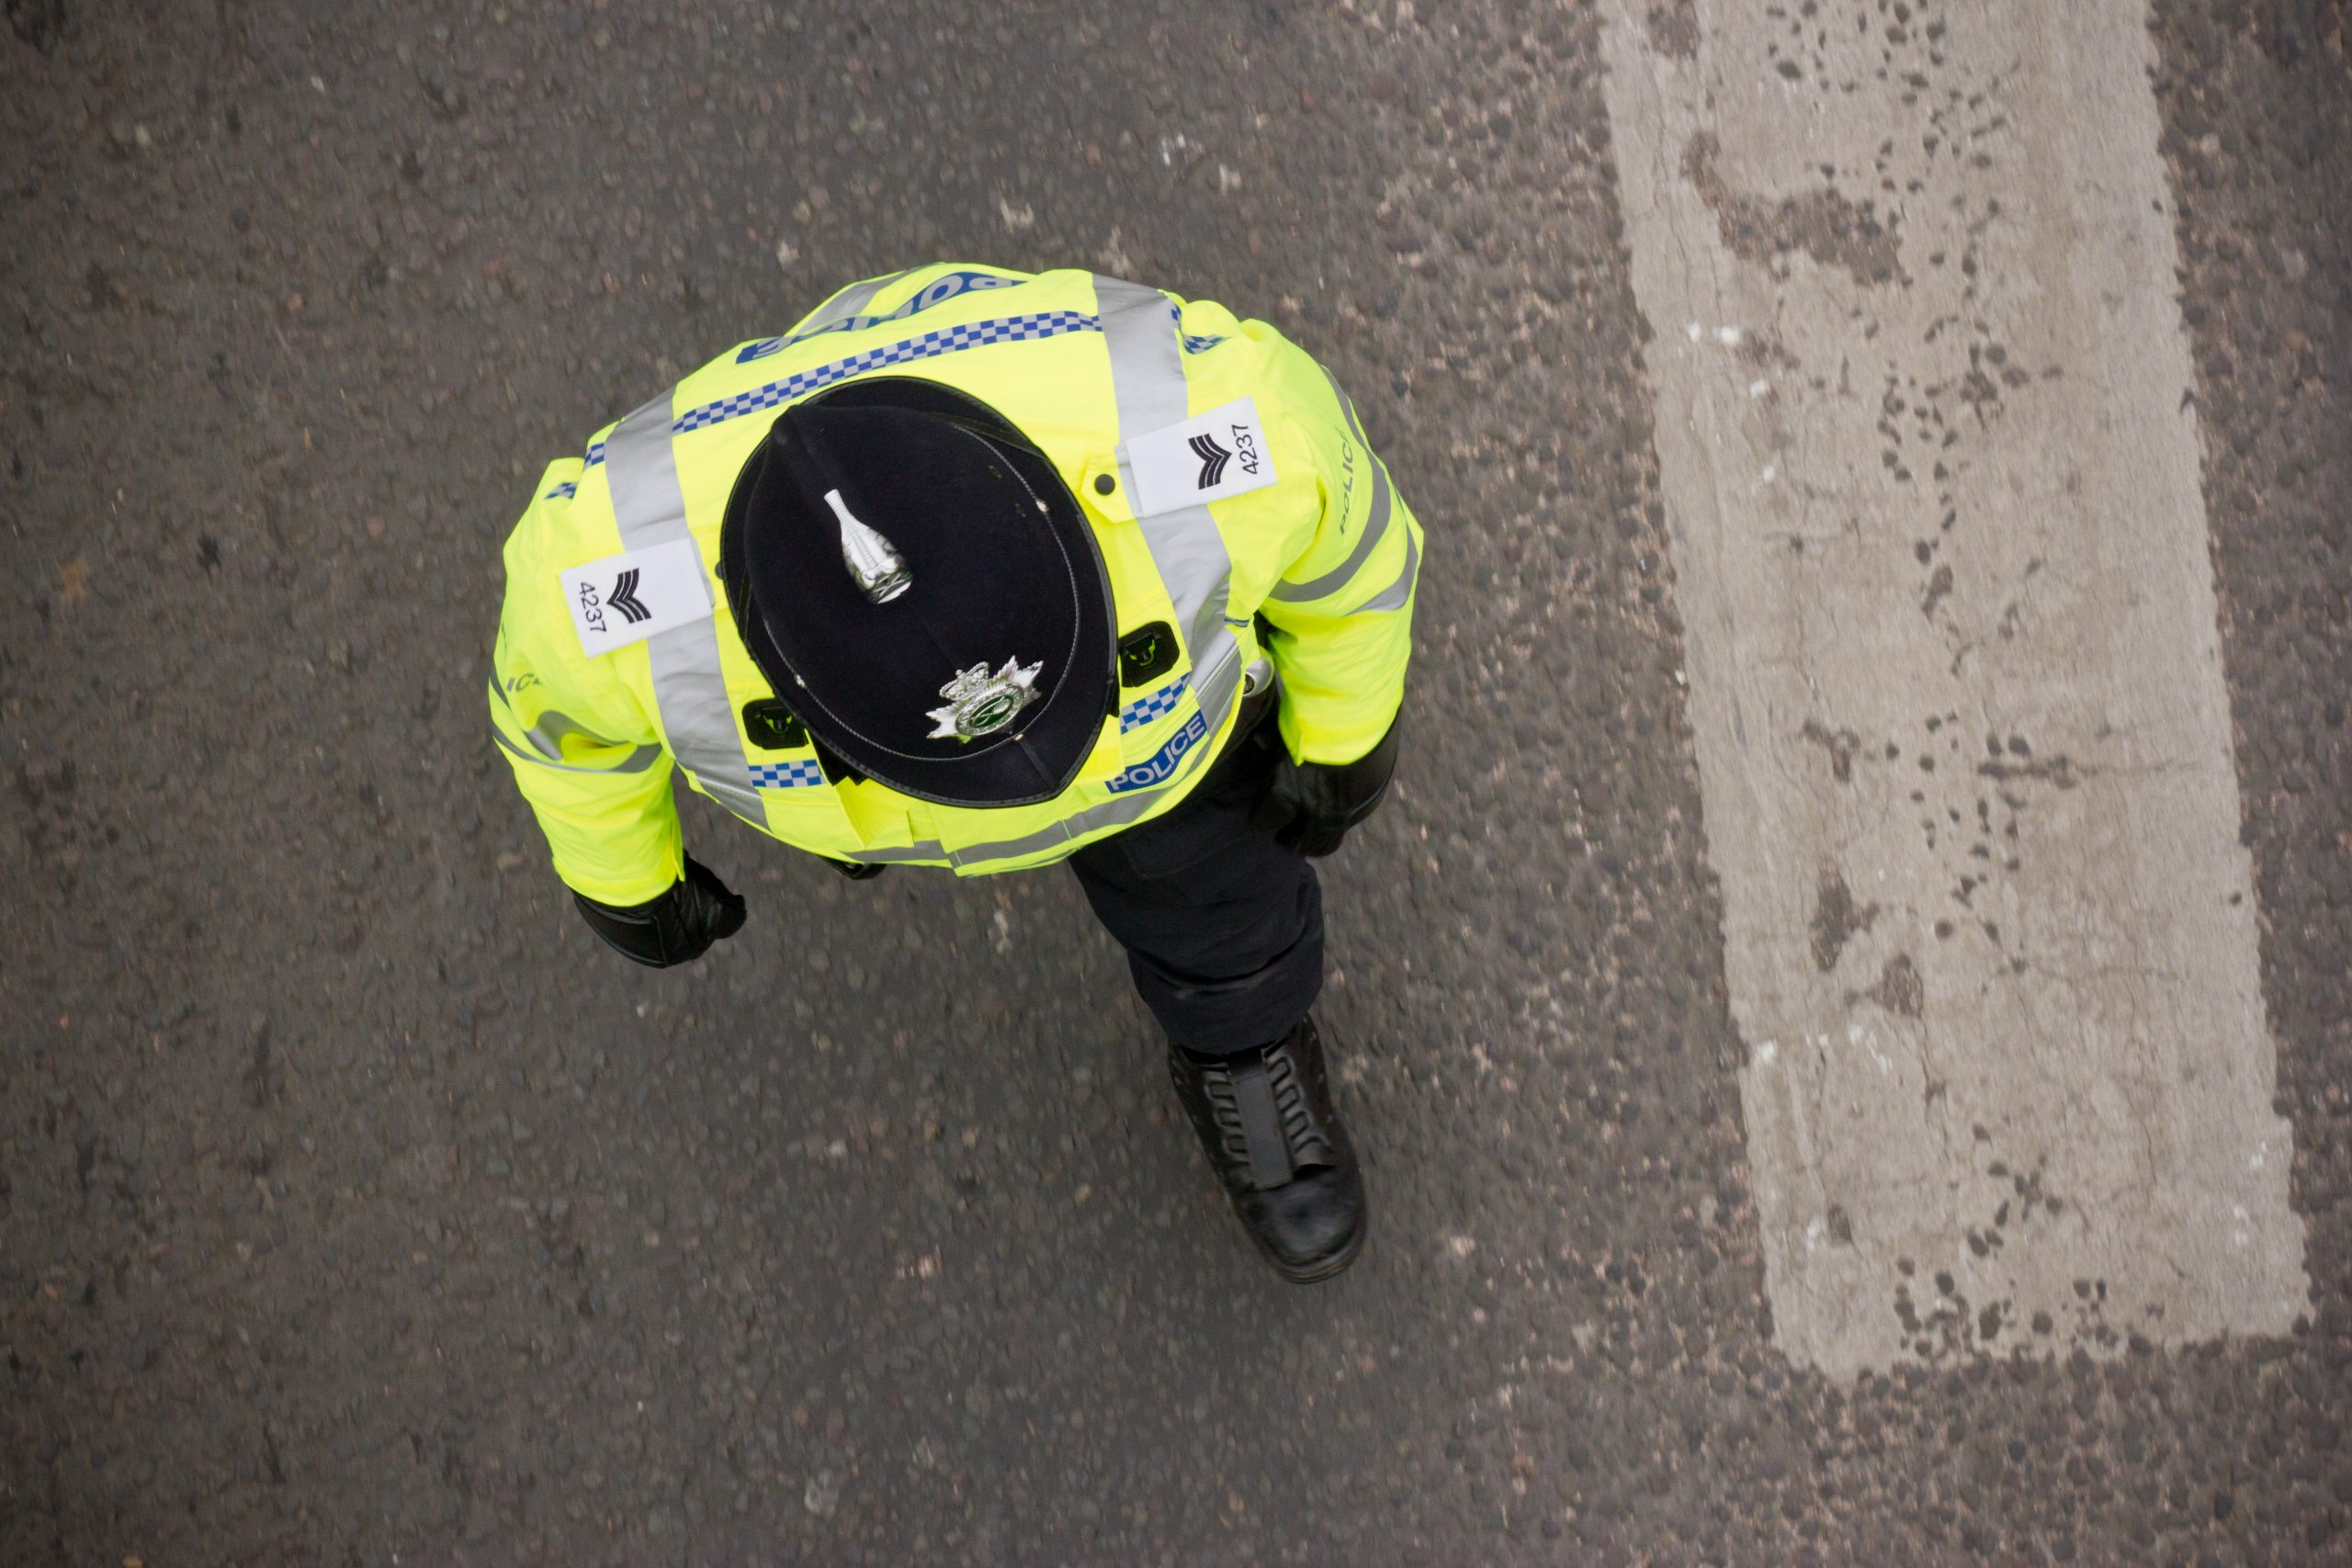 Police presence in schools harms students and 'exacerbates inequalities'